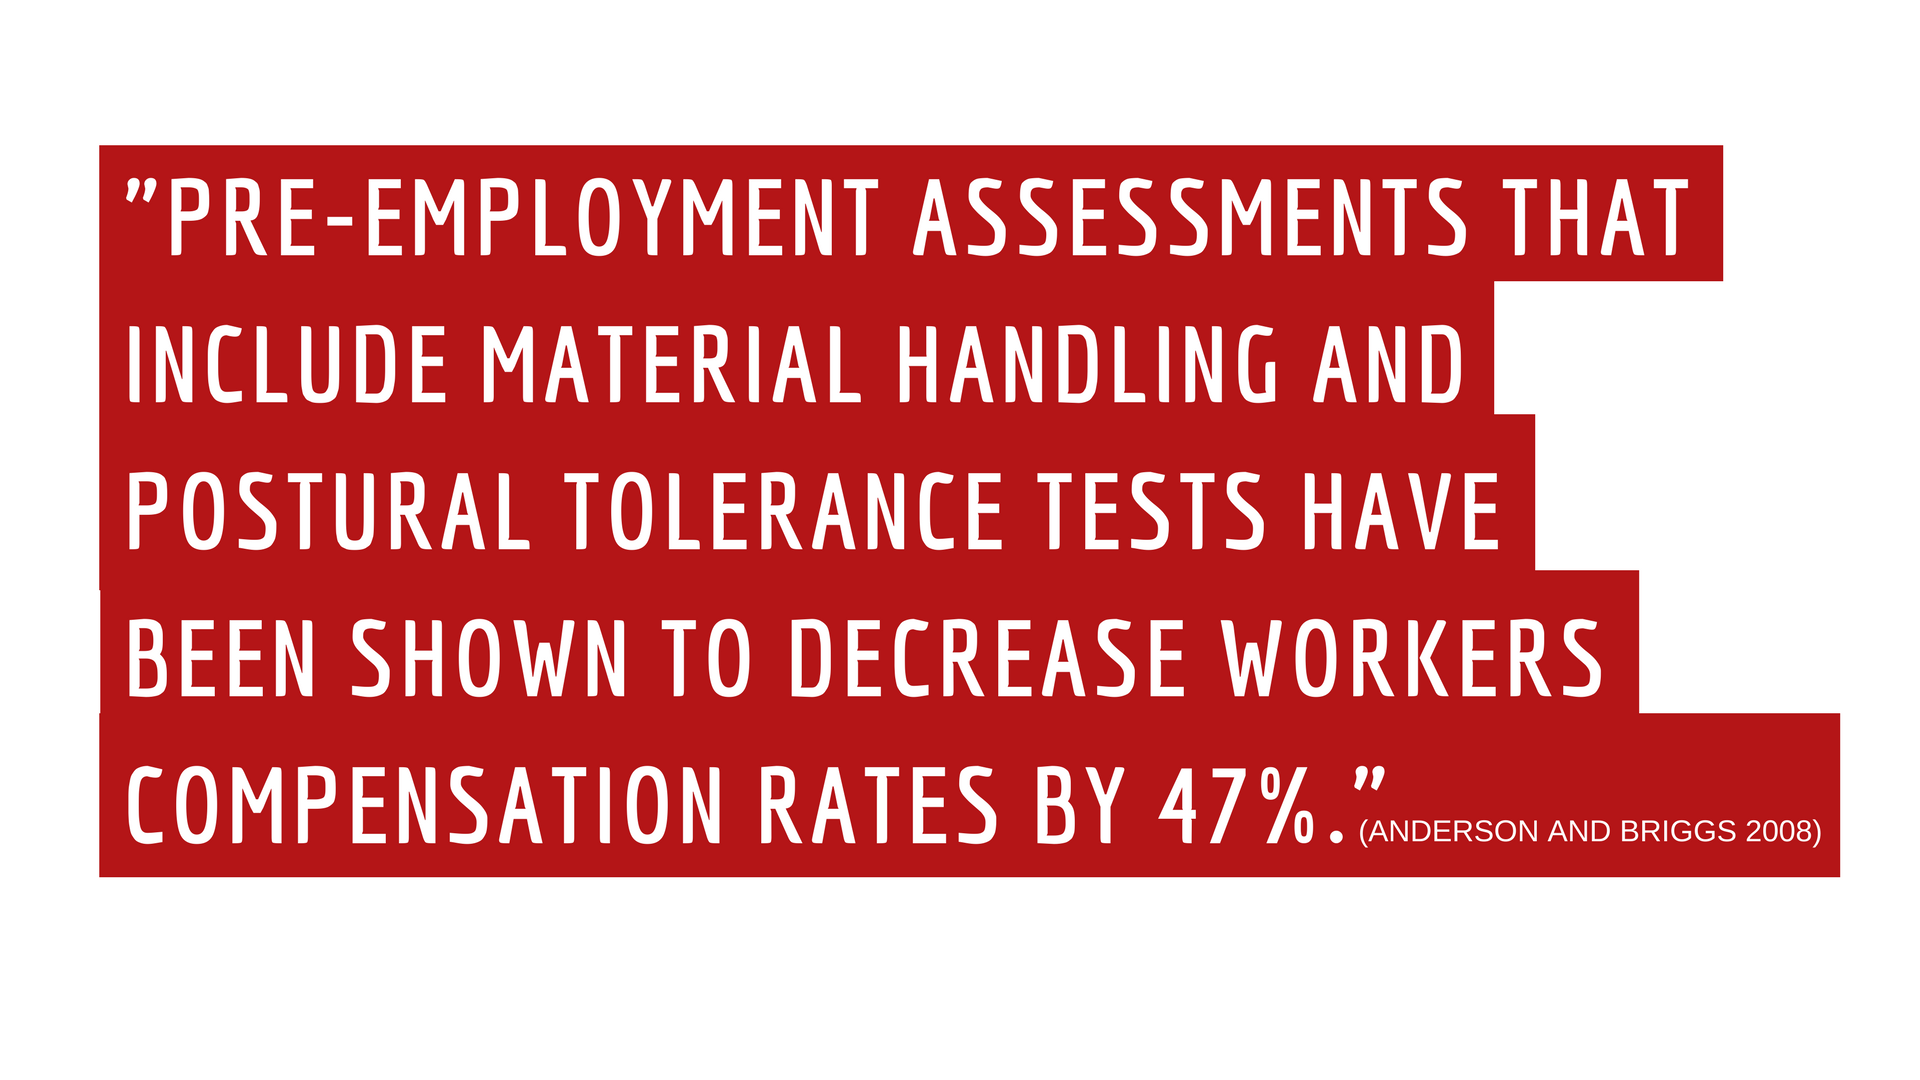 PRE-EMPLOYMENT ASSESSMENTS